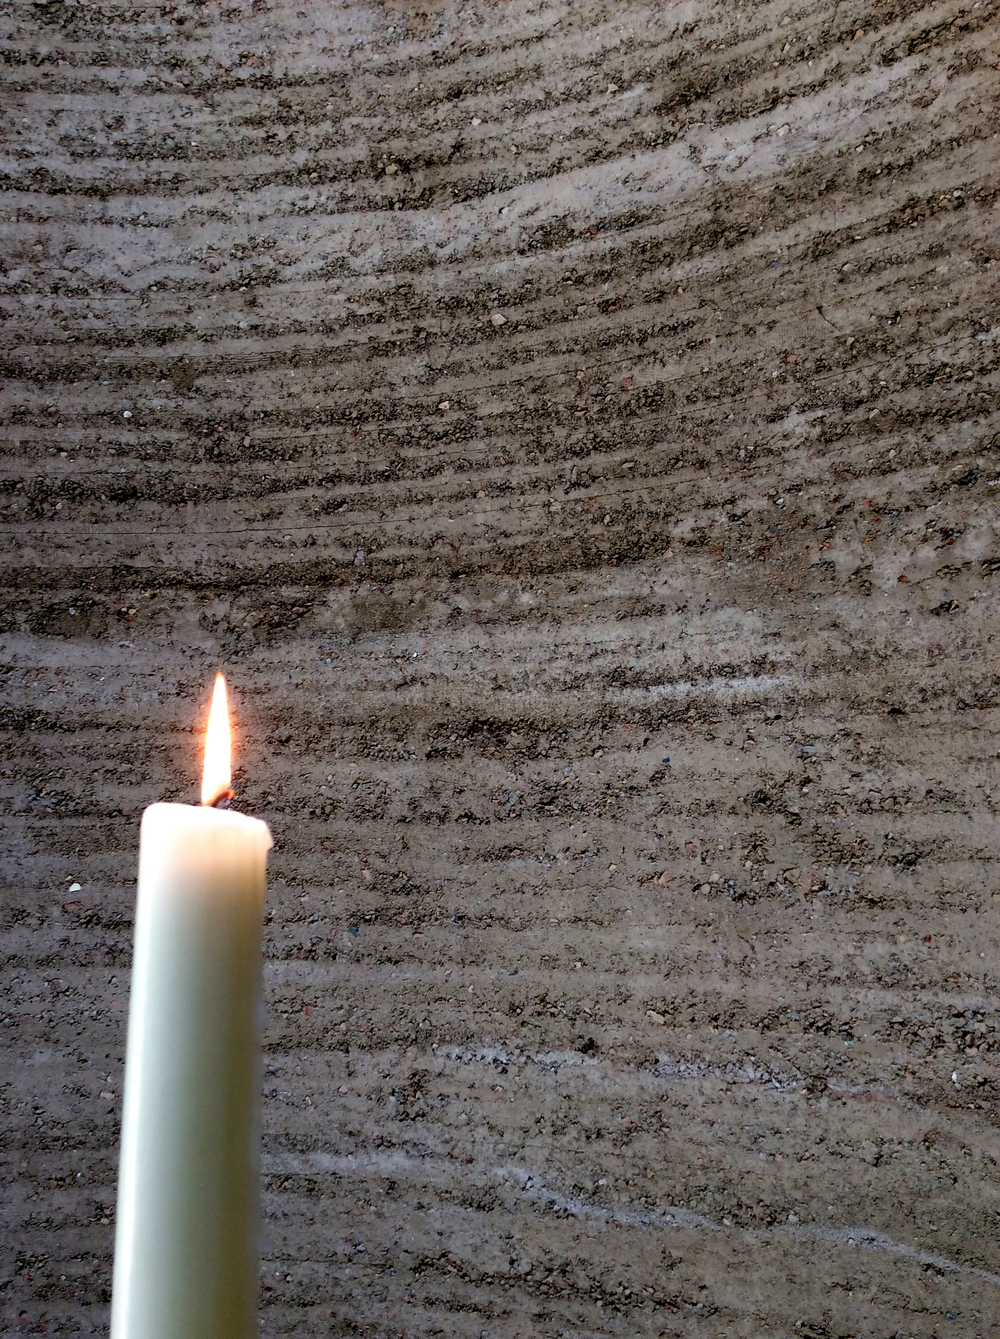 A single candle at the Chapel of Reconciliation gives light to the many lives lost during the era of the Berlin Wall